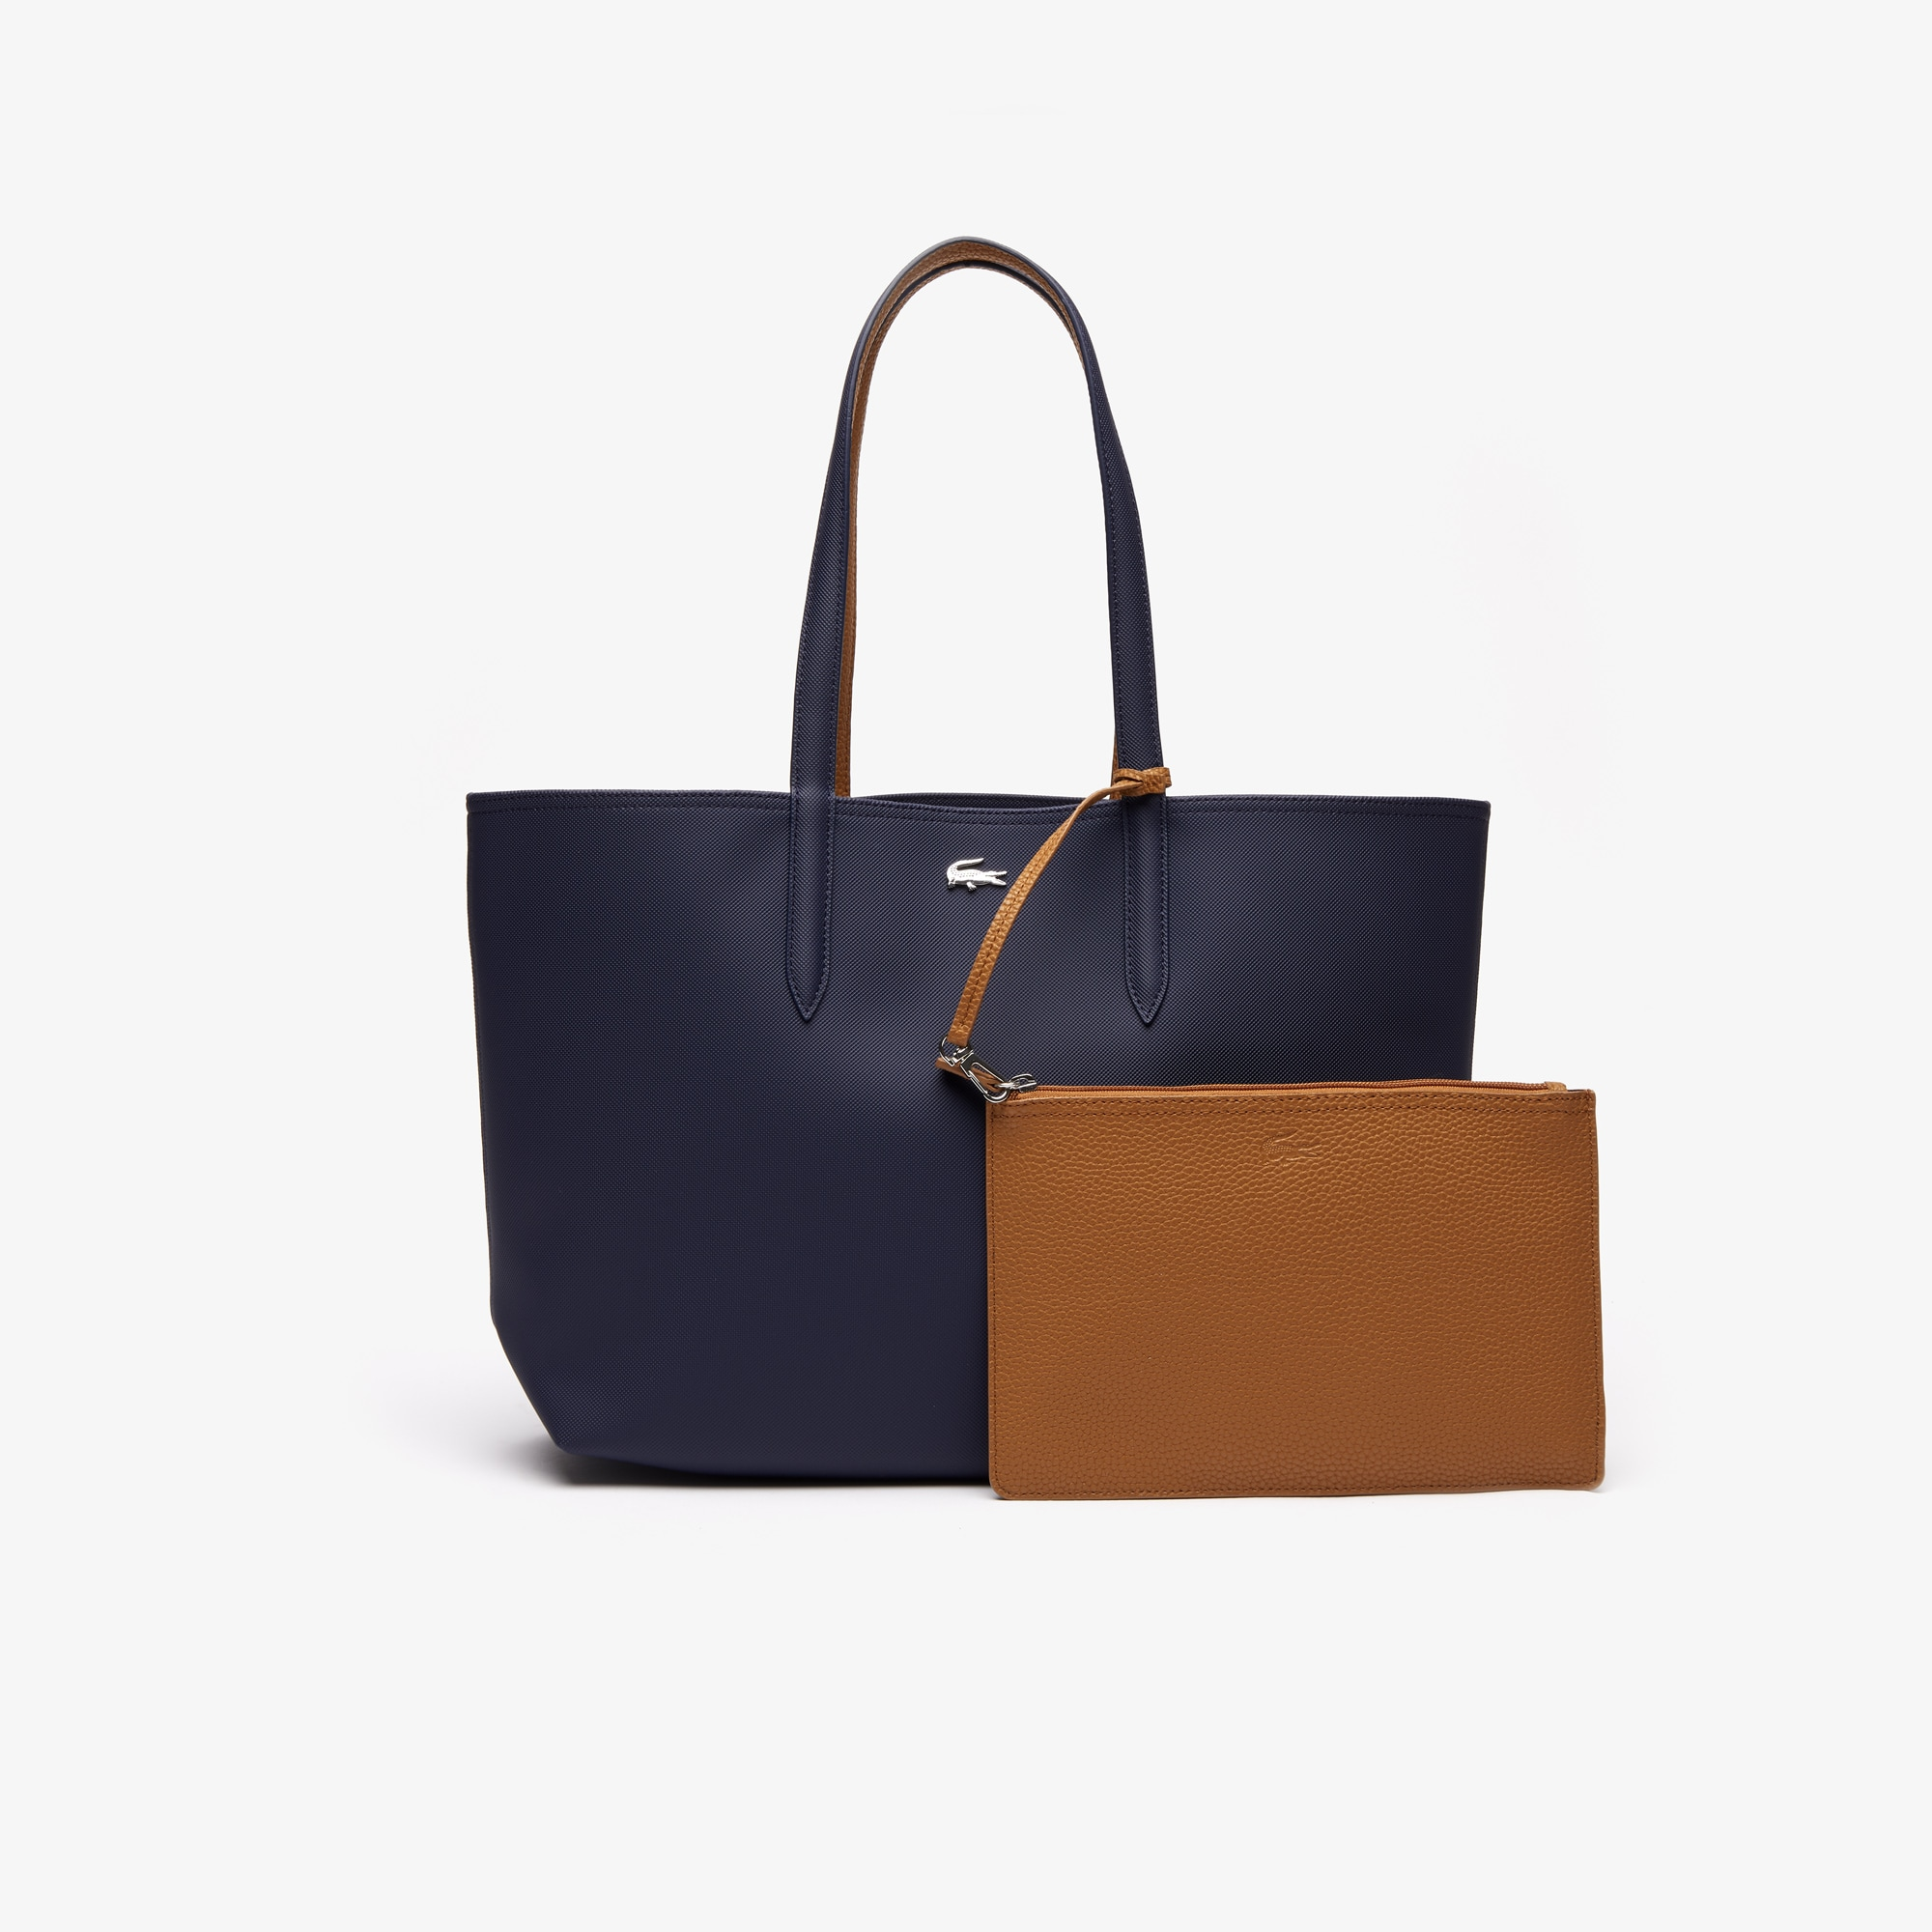 5b7bba50113 Women's Bags and Leathers Good on Sale | LACOSTE